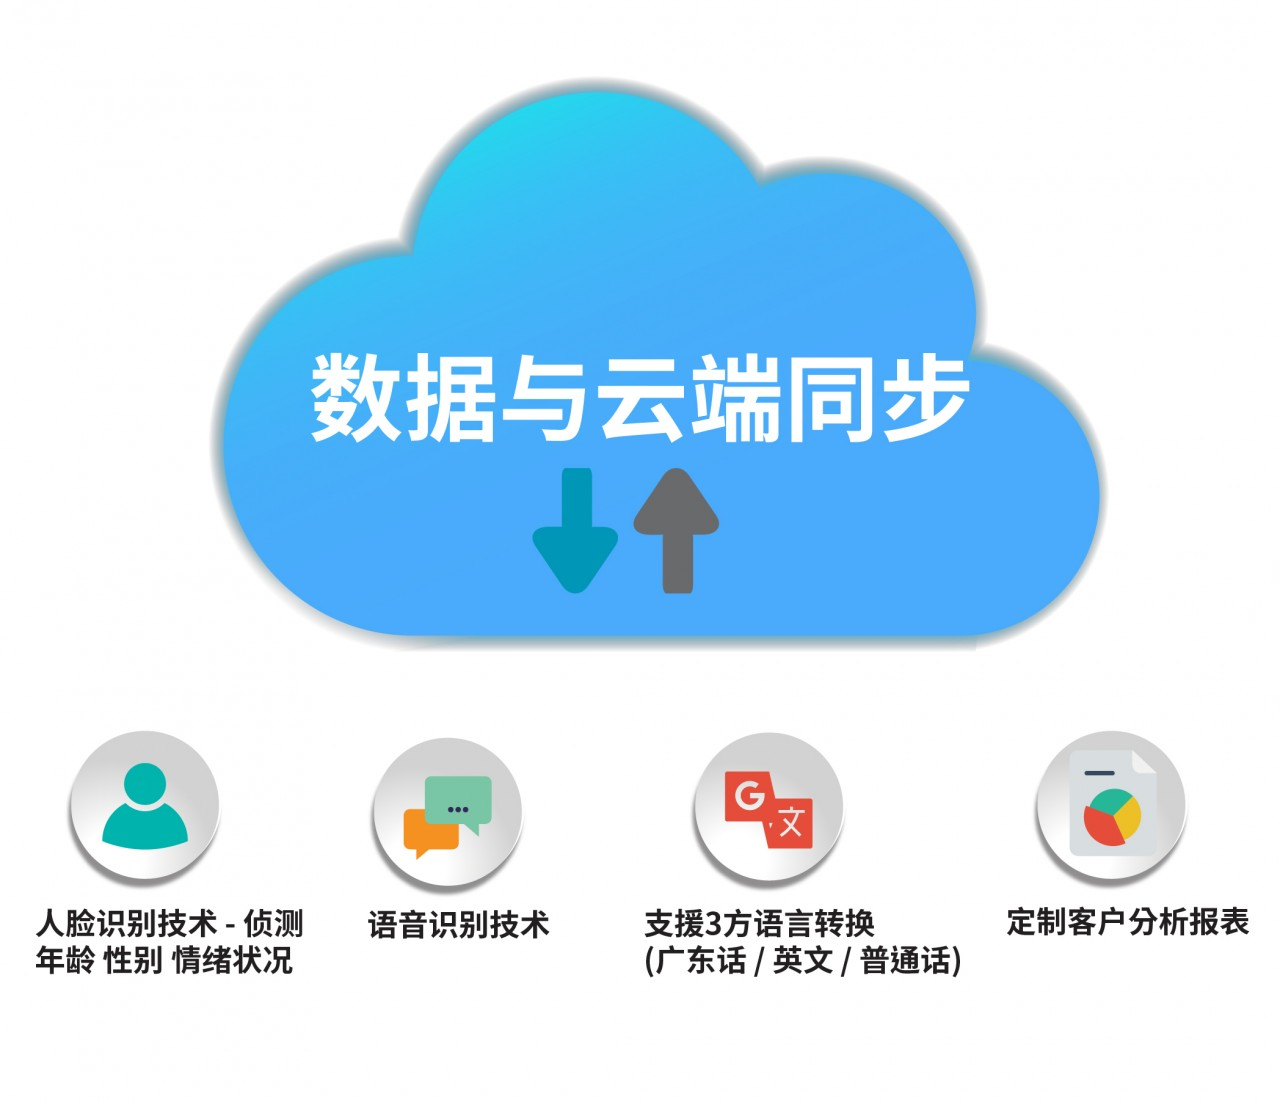 R03 website cloud